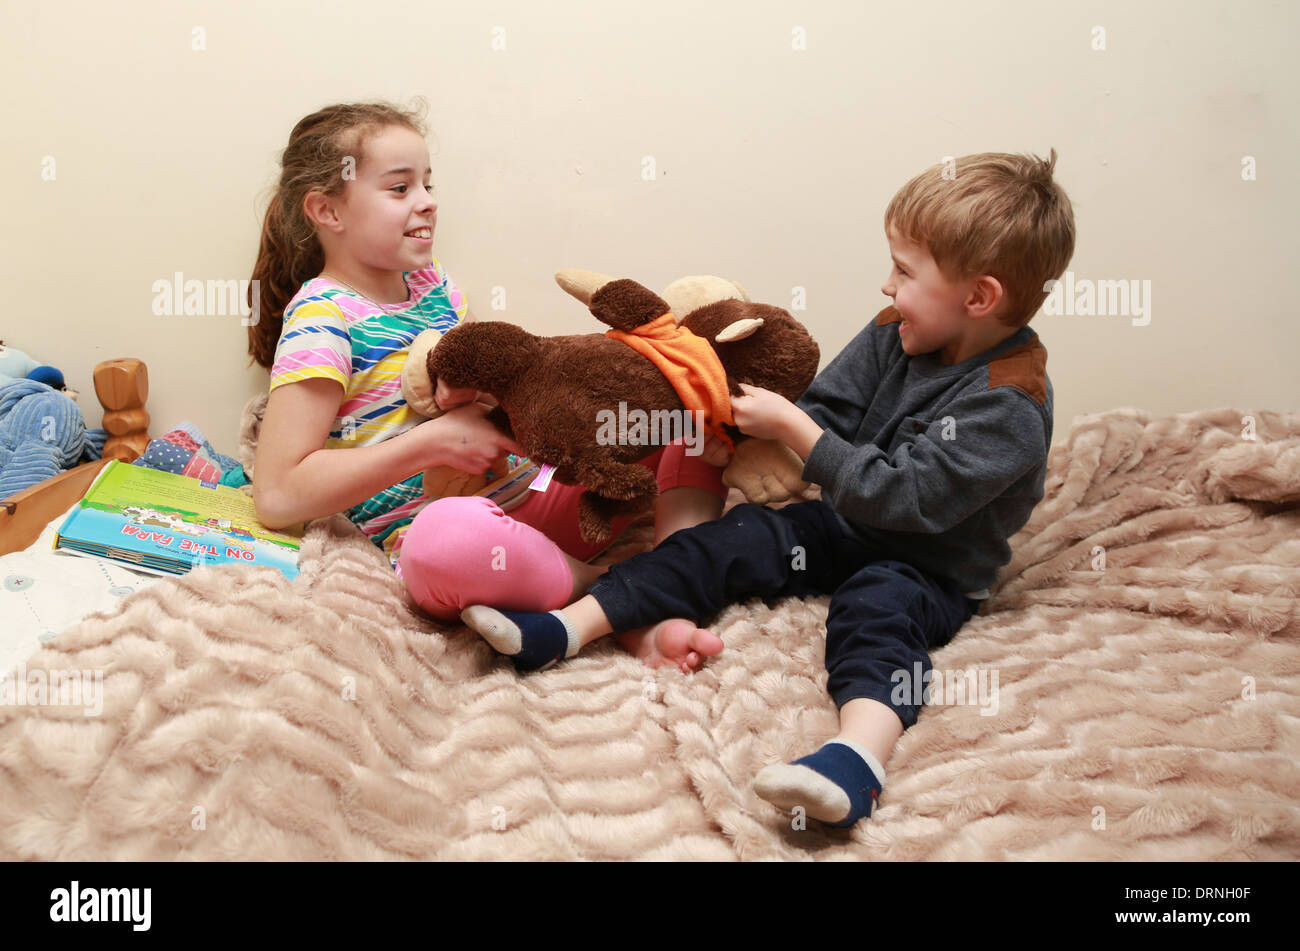 Toys For Siblings : Siblings fighting over toys pixshark images